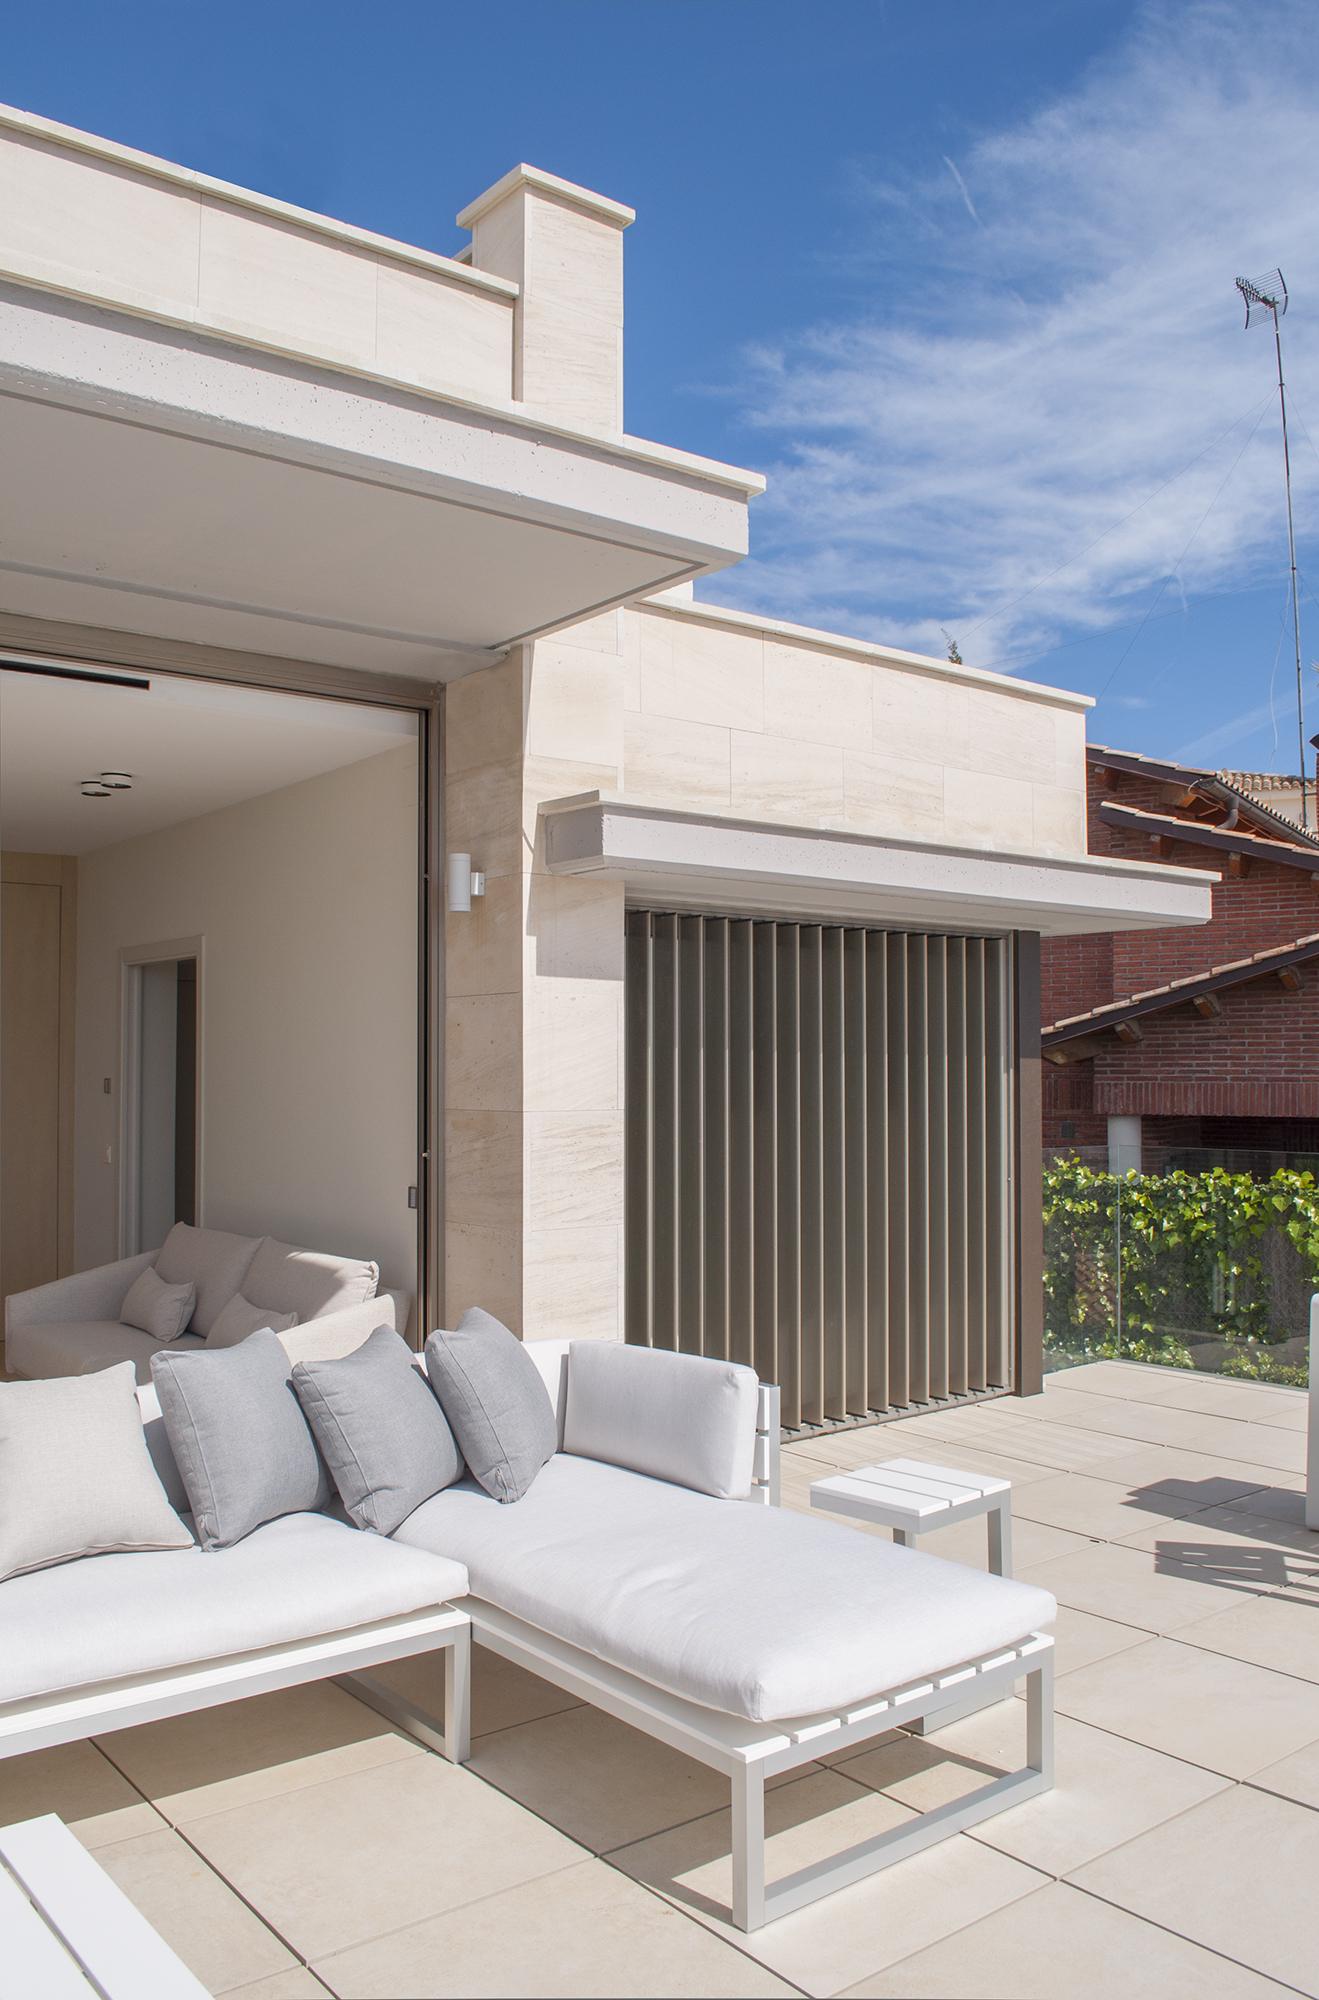 13-rardo-architects-houses-in-sitges-volume-terrace